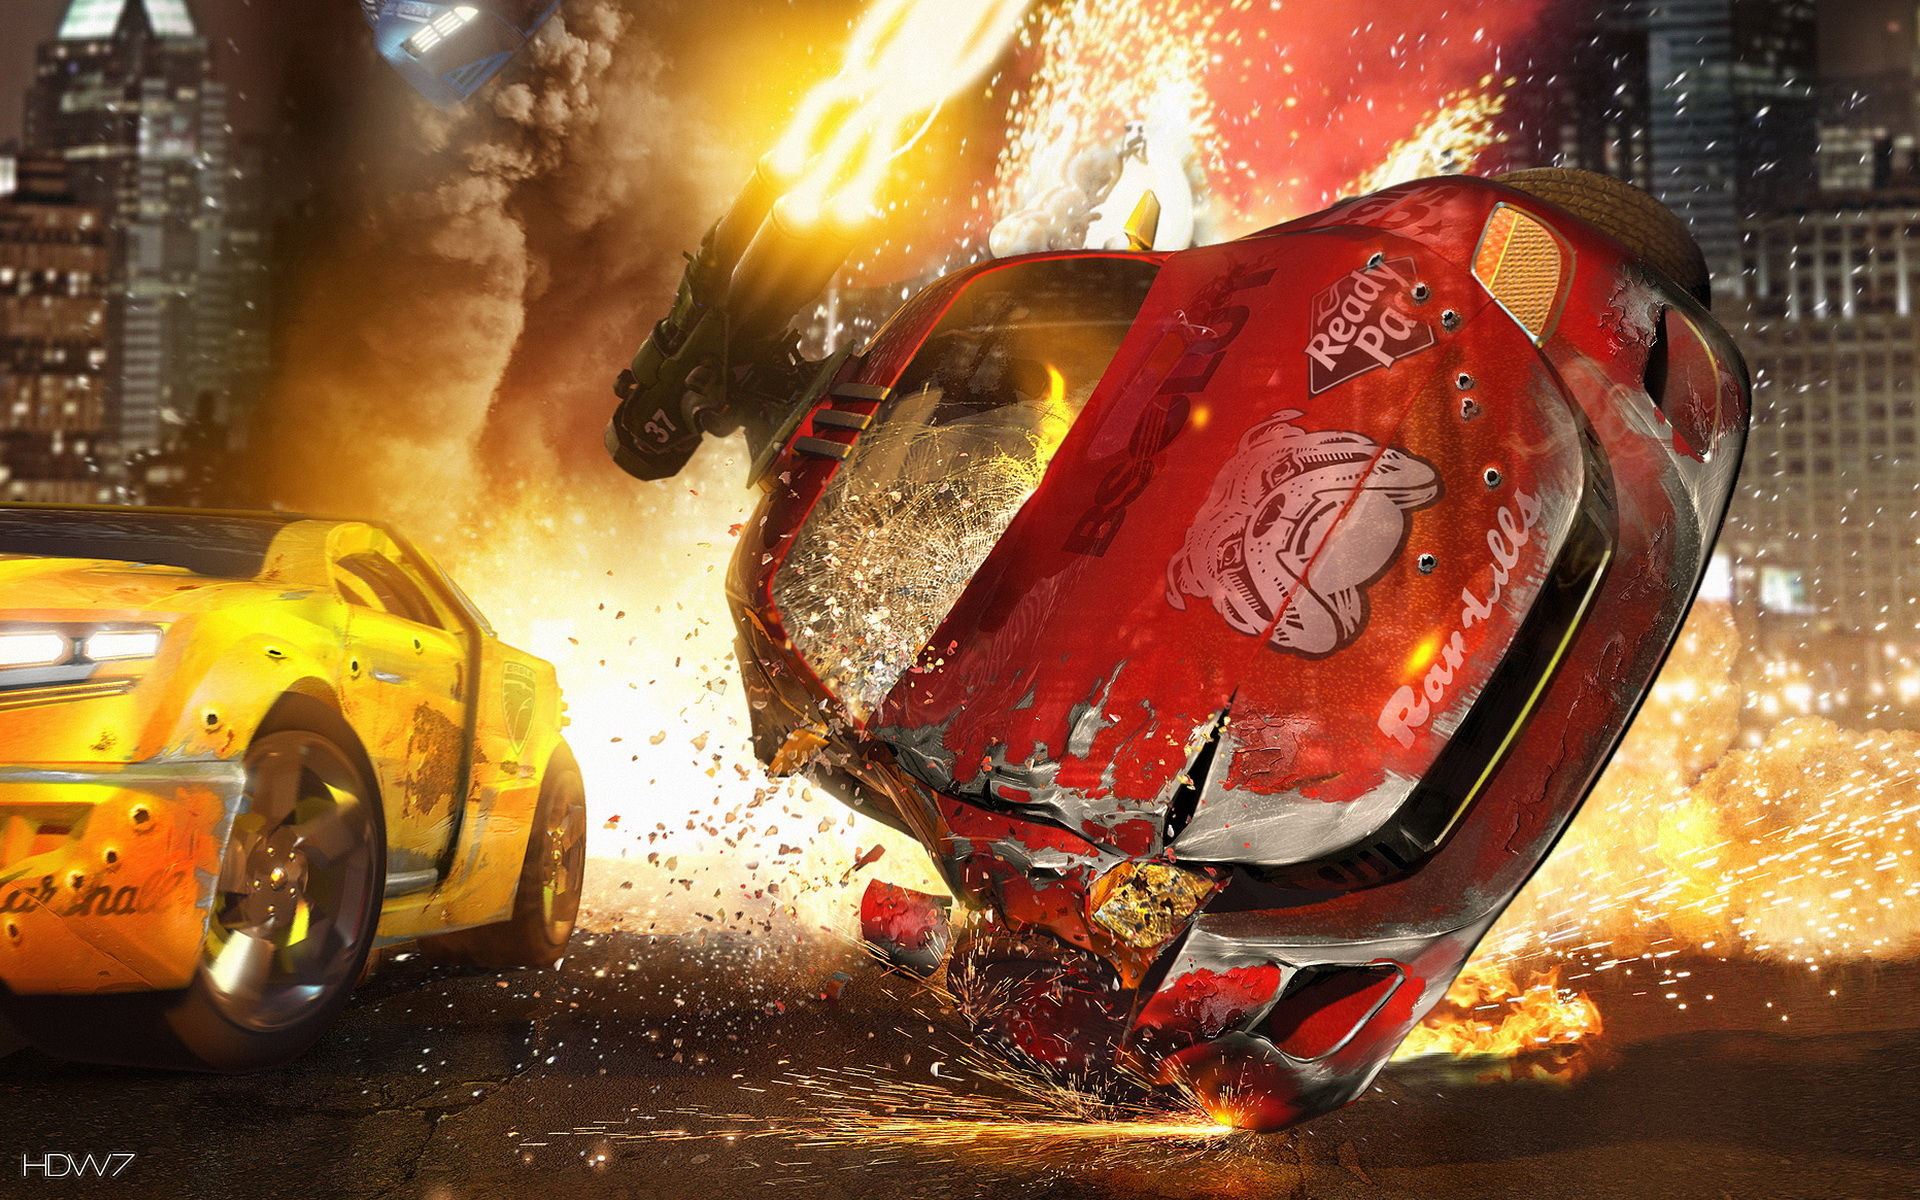 car crash wallpaper (62+ images)